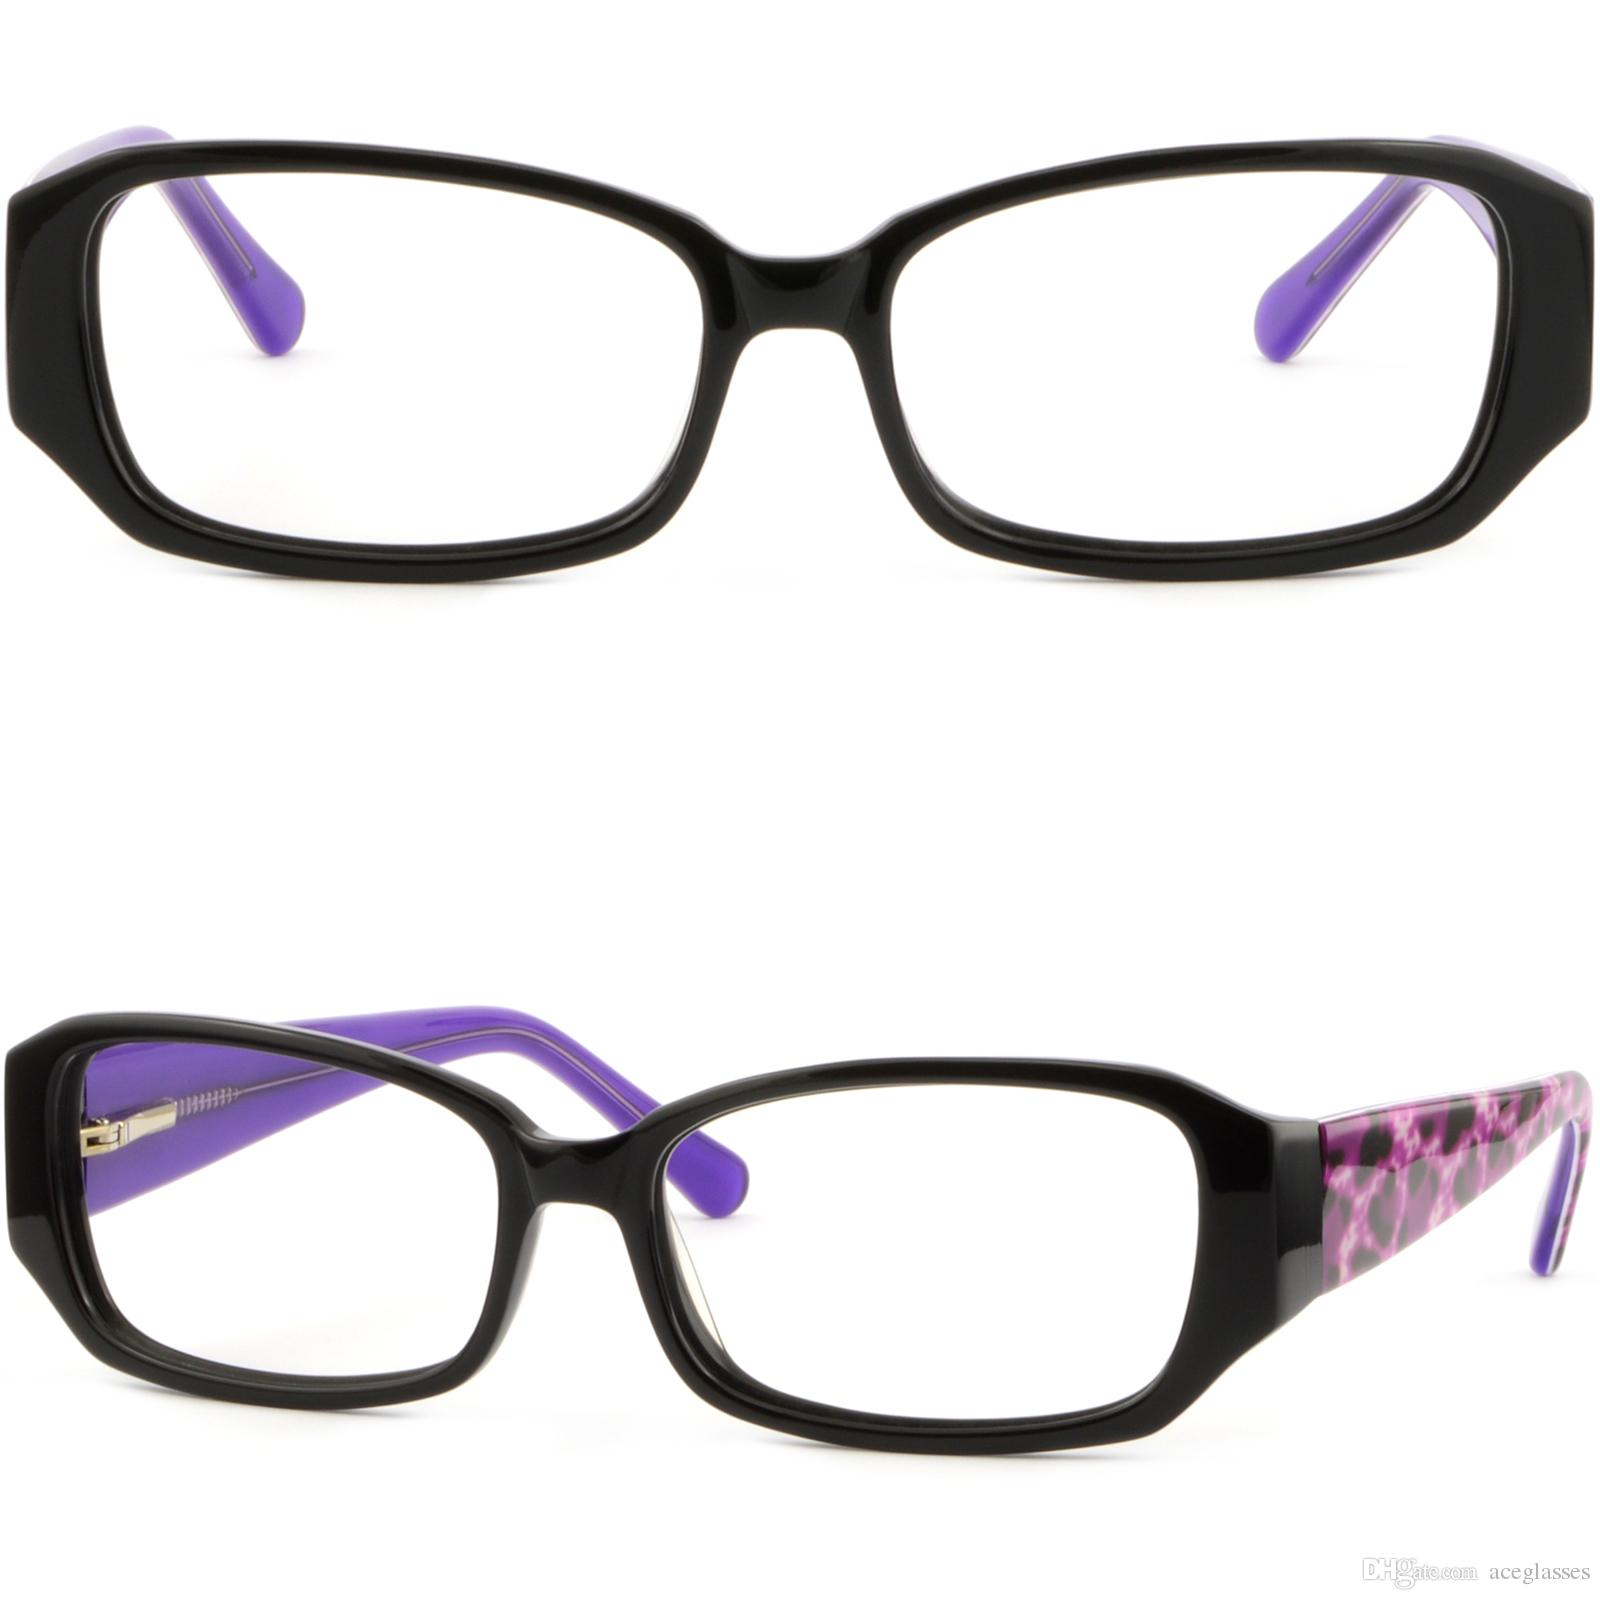 9f660ed4f61c Chic Fashionable Women S Acetate Frame Thick Arm RX Glasses Spring Hinges  Black Eyeglasses Frame Size Eyeglasses Frames Cheap From Aceglasses